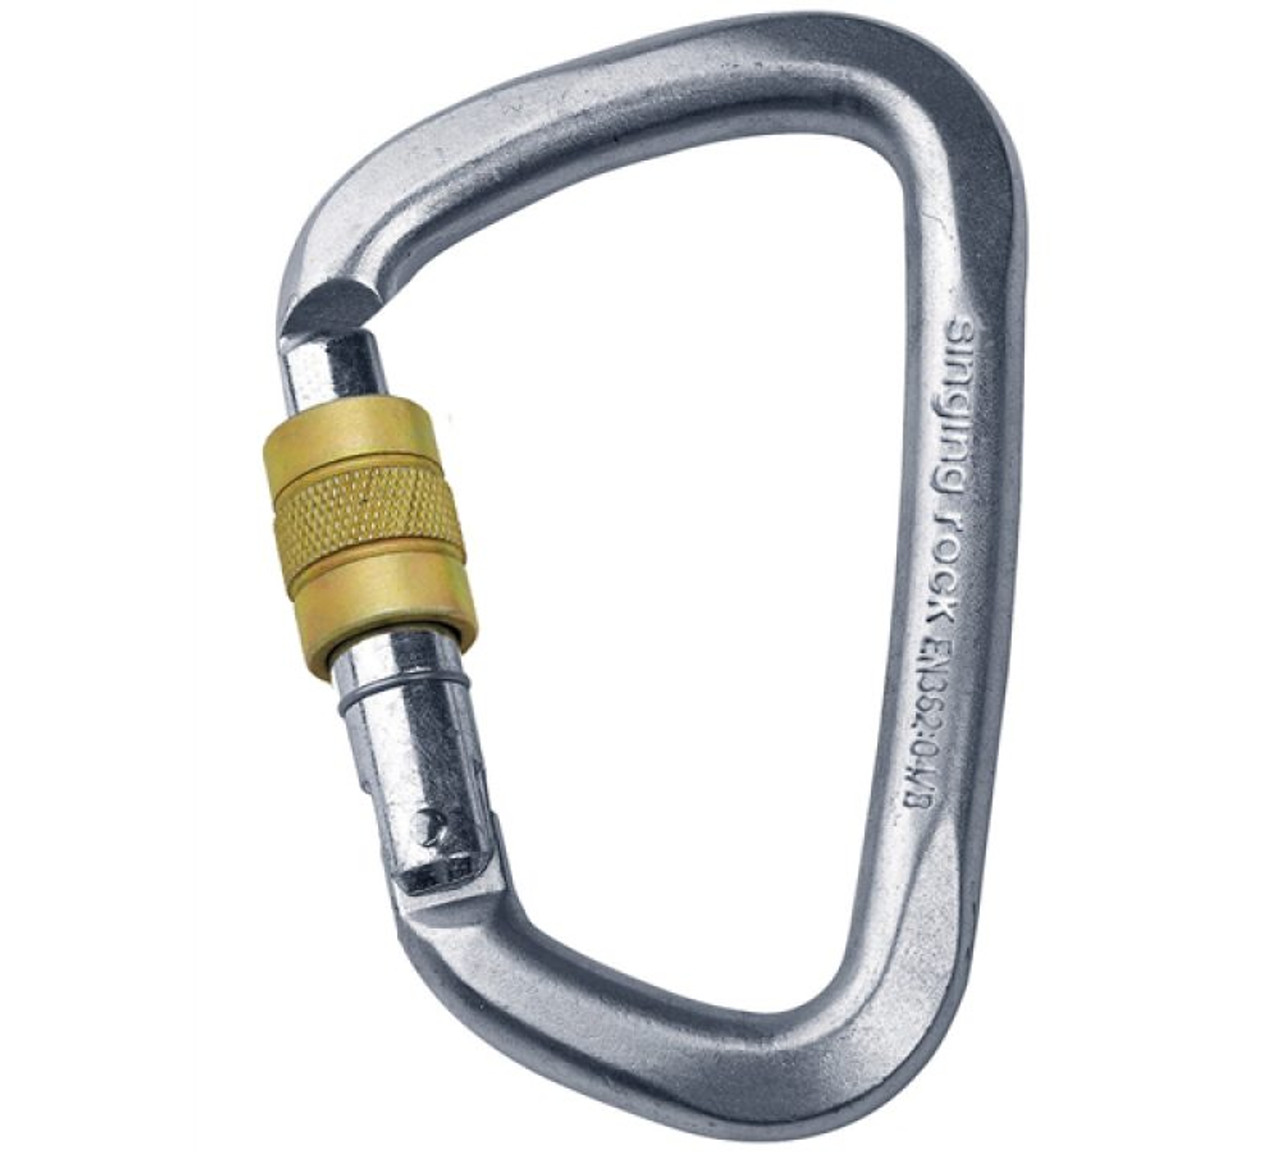 Singing Rock Steel Carabiner 50kn